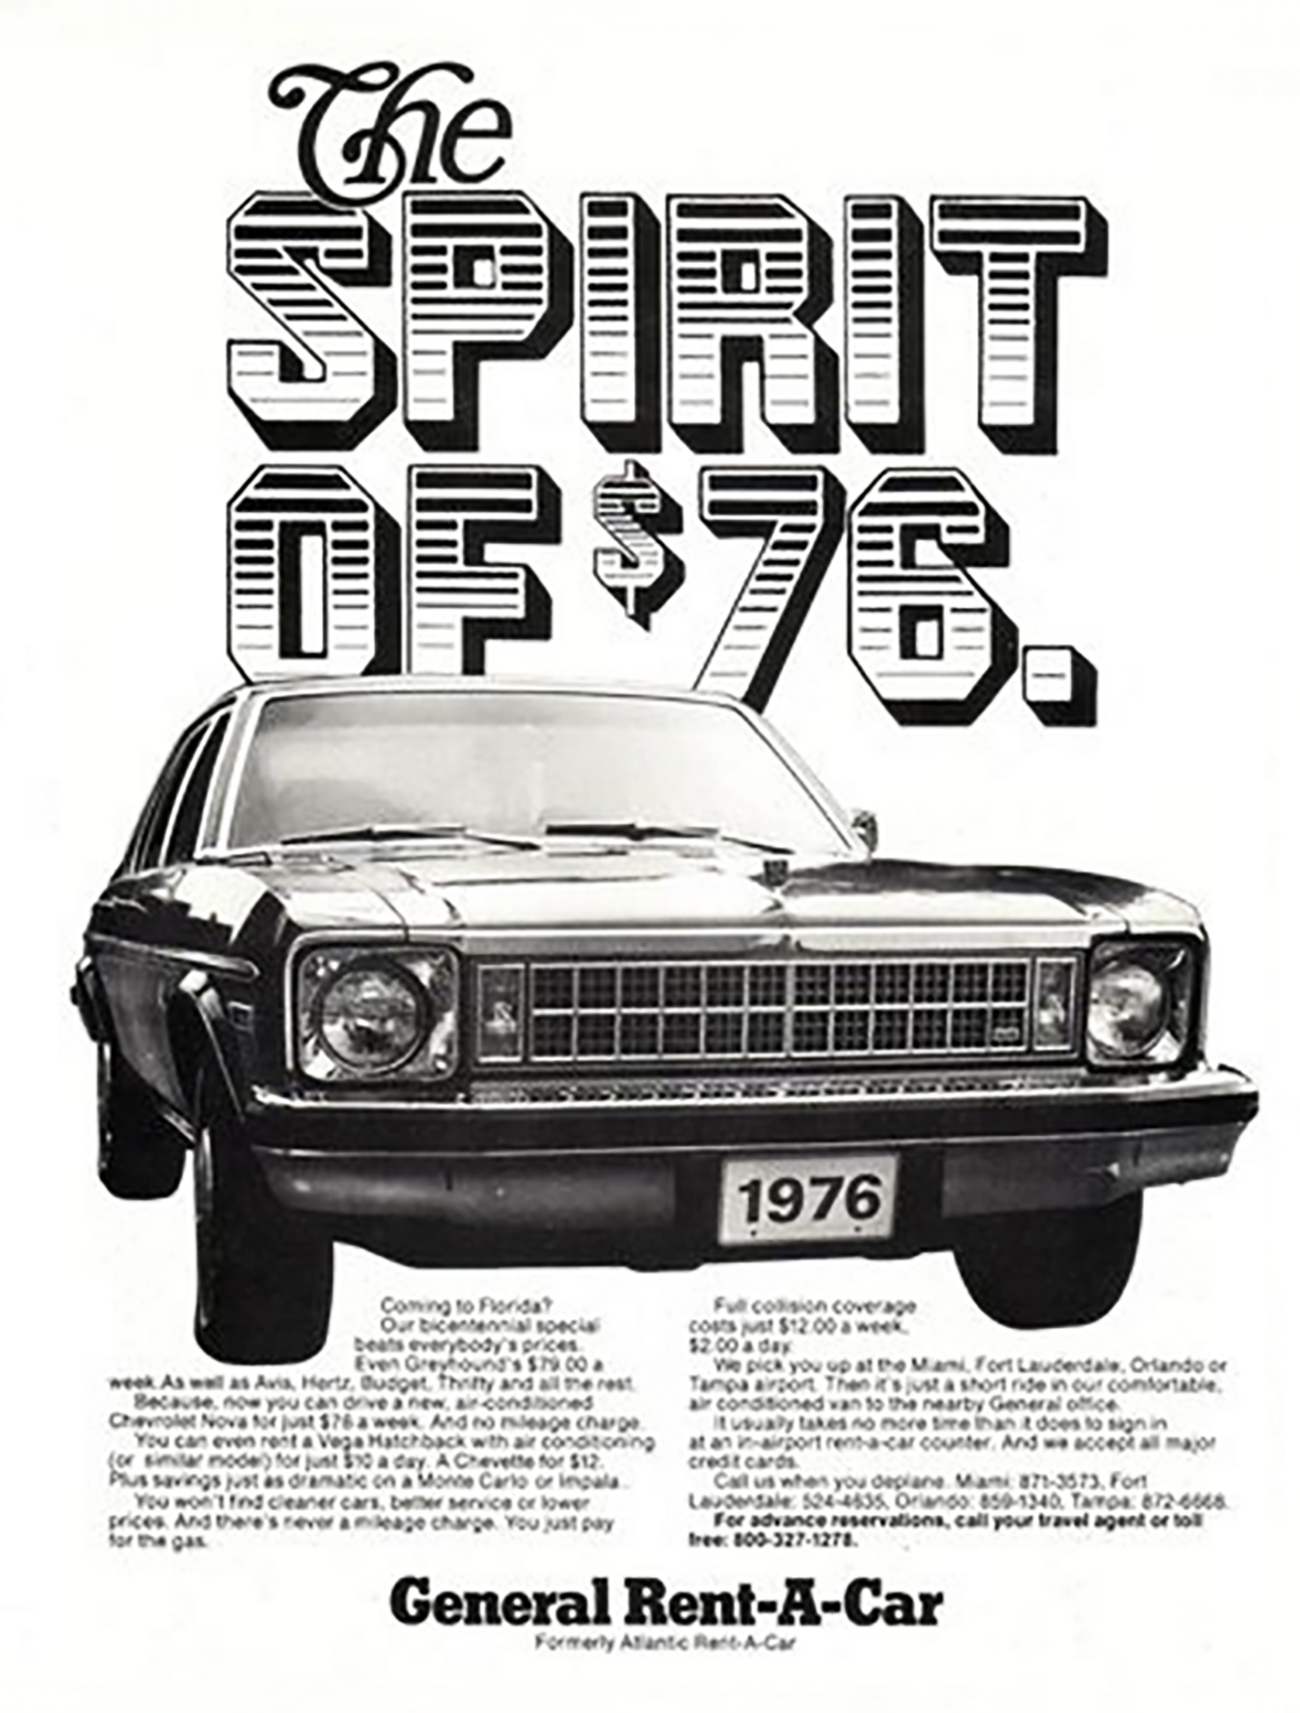 1976 General Car Rental Ad